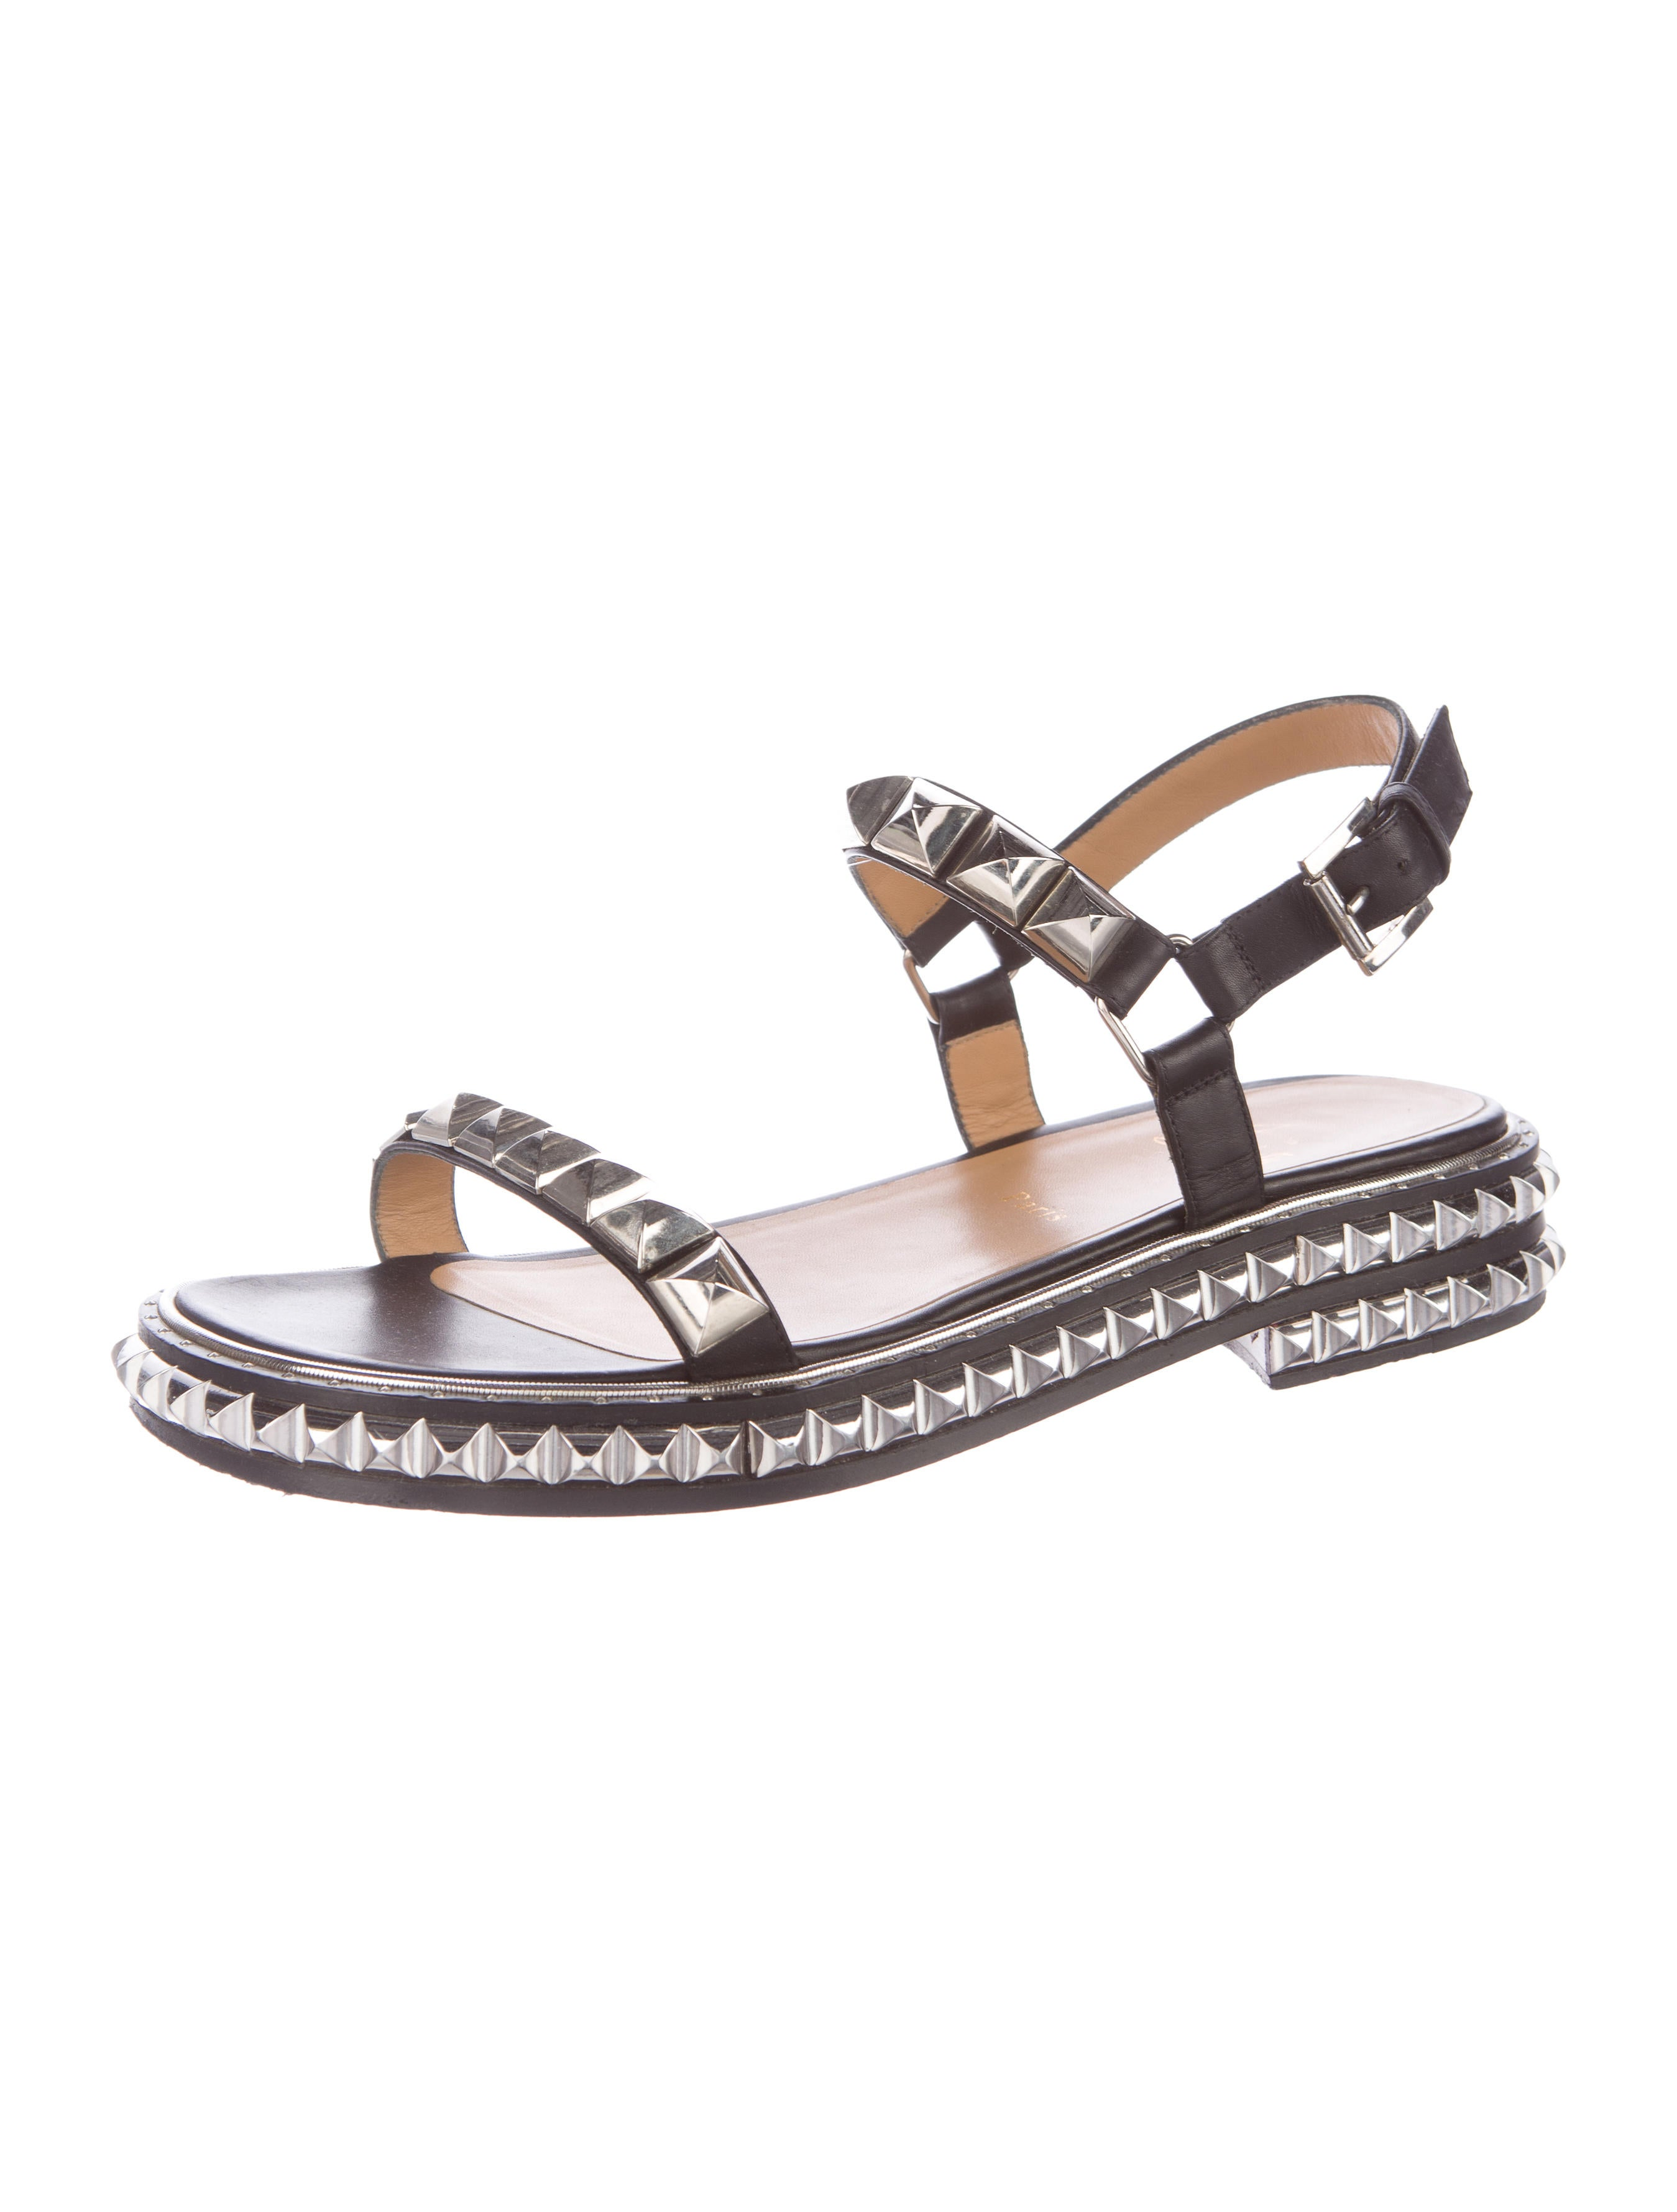 Christian Louboutin Studded Sandalovitch Sandals discount best seller 2015 for sale footaction qeVvY